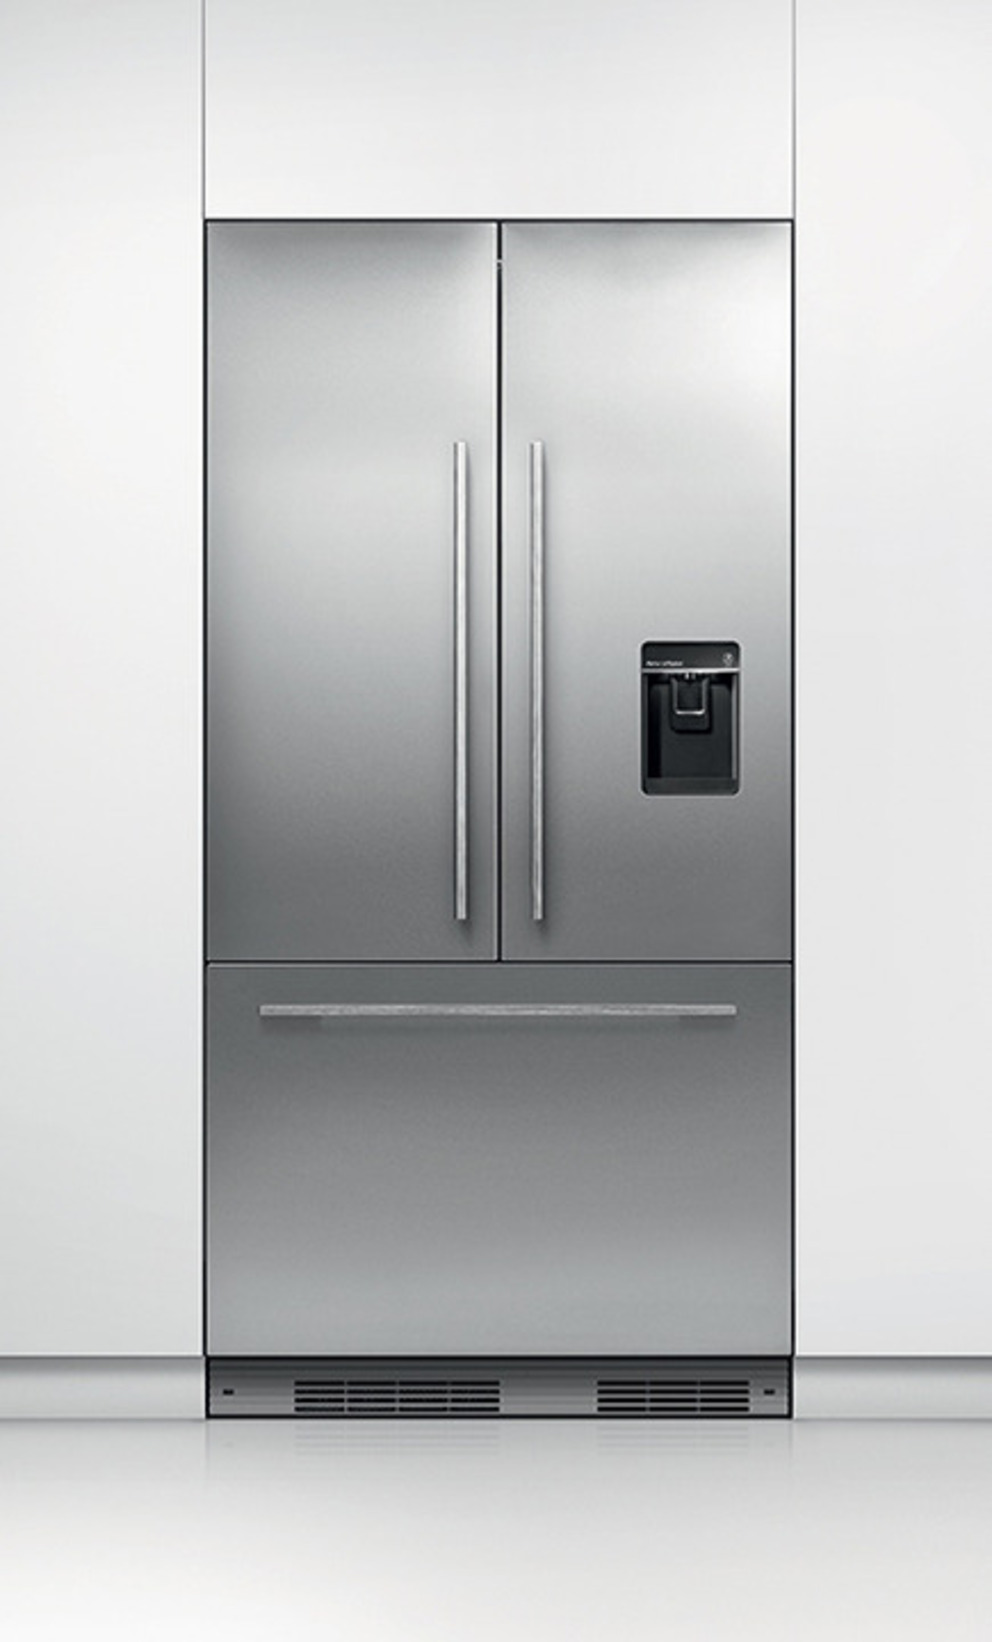 Fridges Fisher&Paykel RS36A72U1 + RD3672U (72'' F&P)